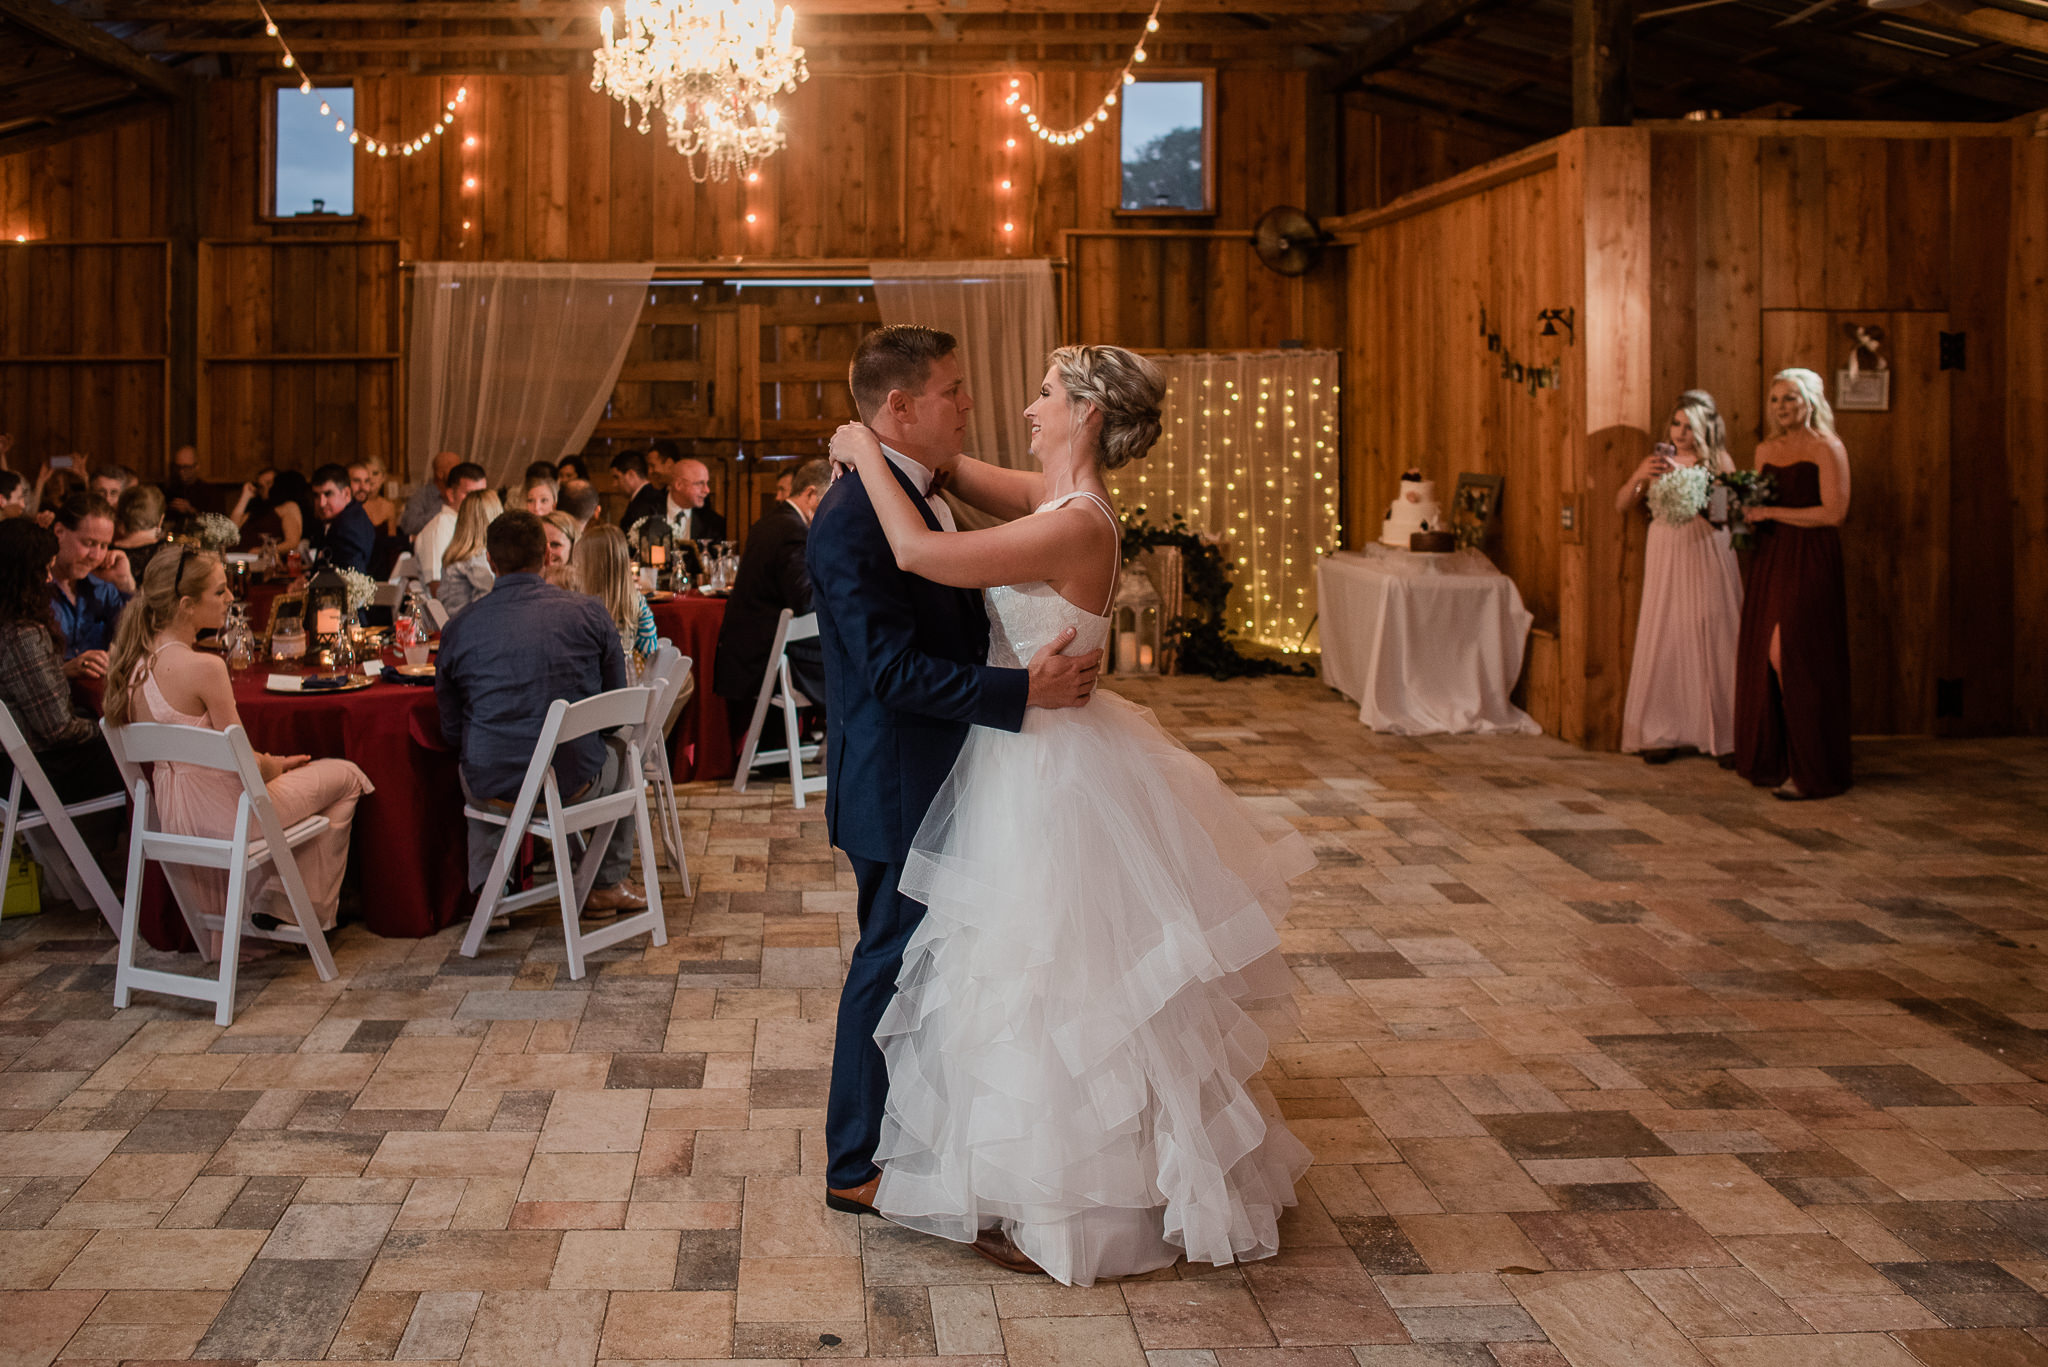 TAMPA_WEDDING_PHOTOGRAPHER_DRMZ_SPARROW_BARN_46.jpg